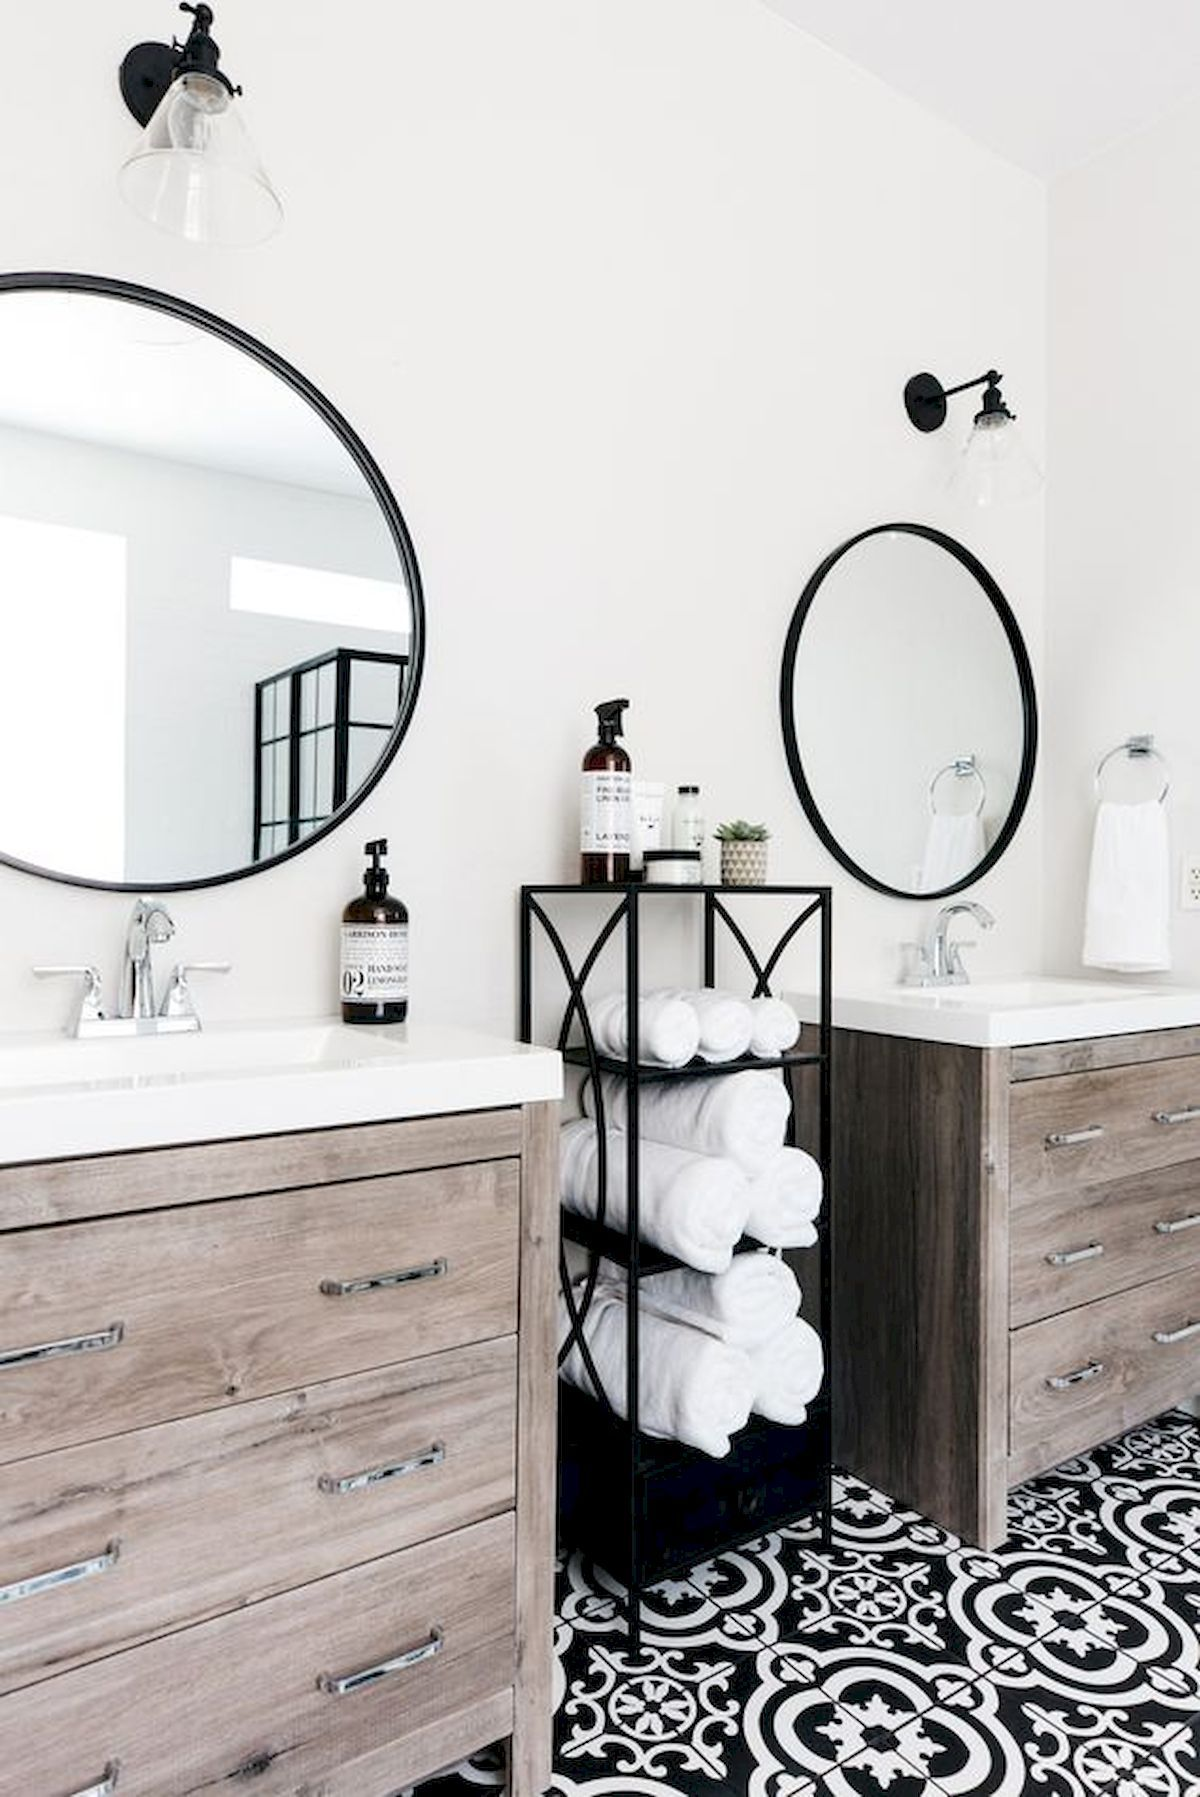 55 Stunning Farmhouse Bathroom Mirror Design Ideas And Decor Farmhouse Bathroom Mirrors Bathroom Mirror Design Home Decor